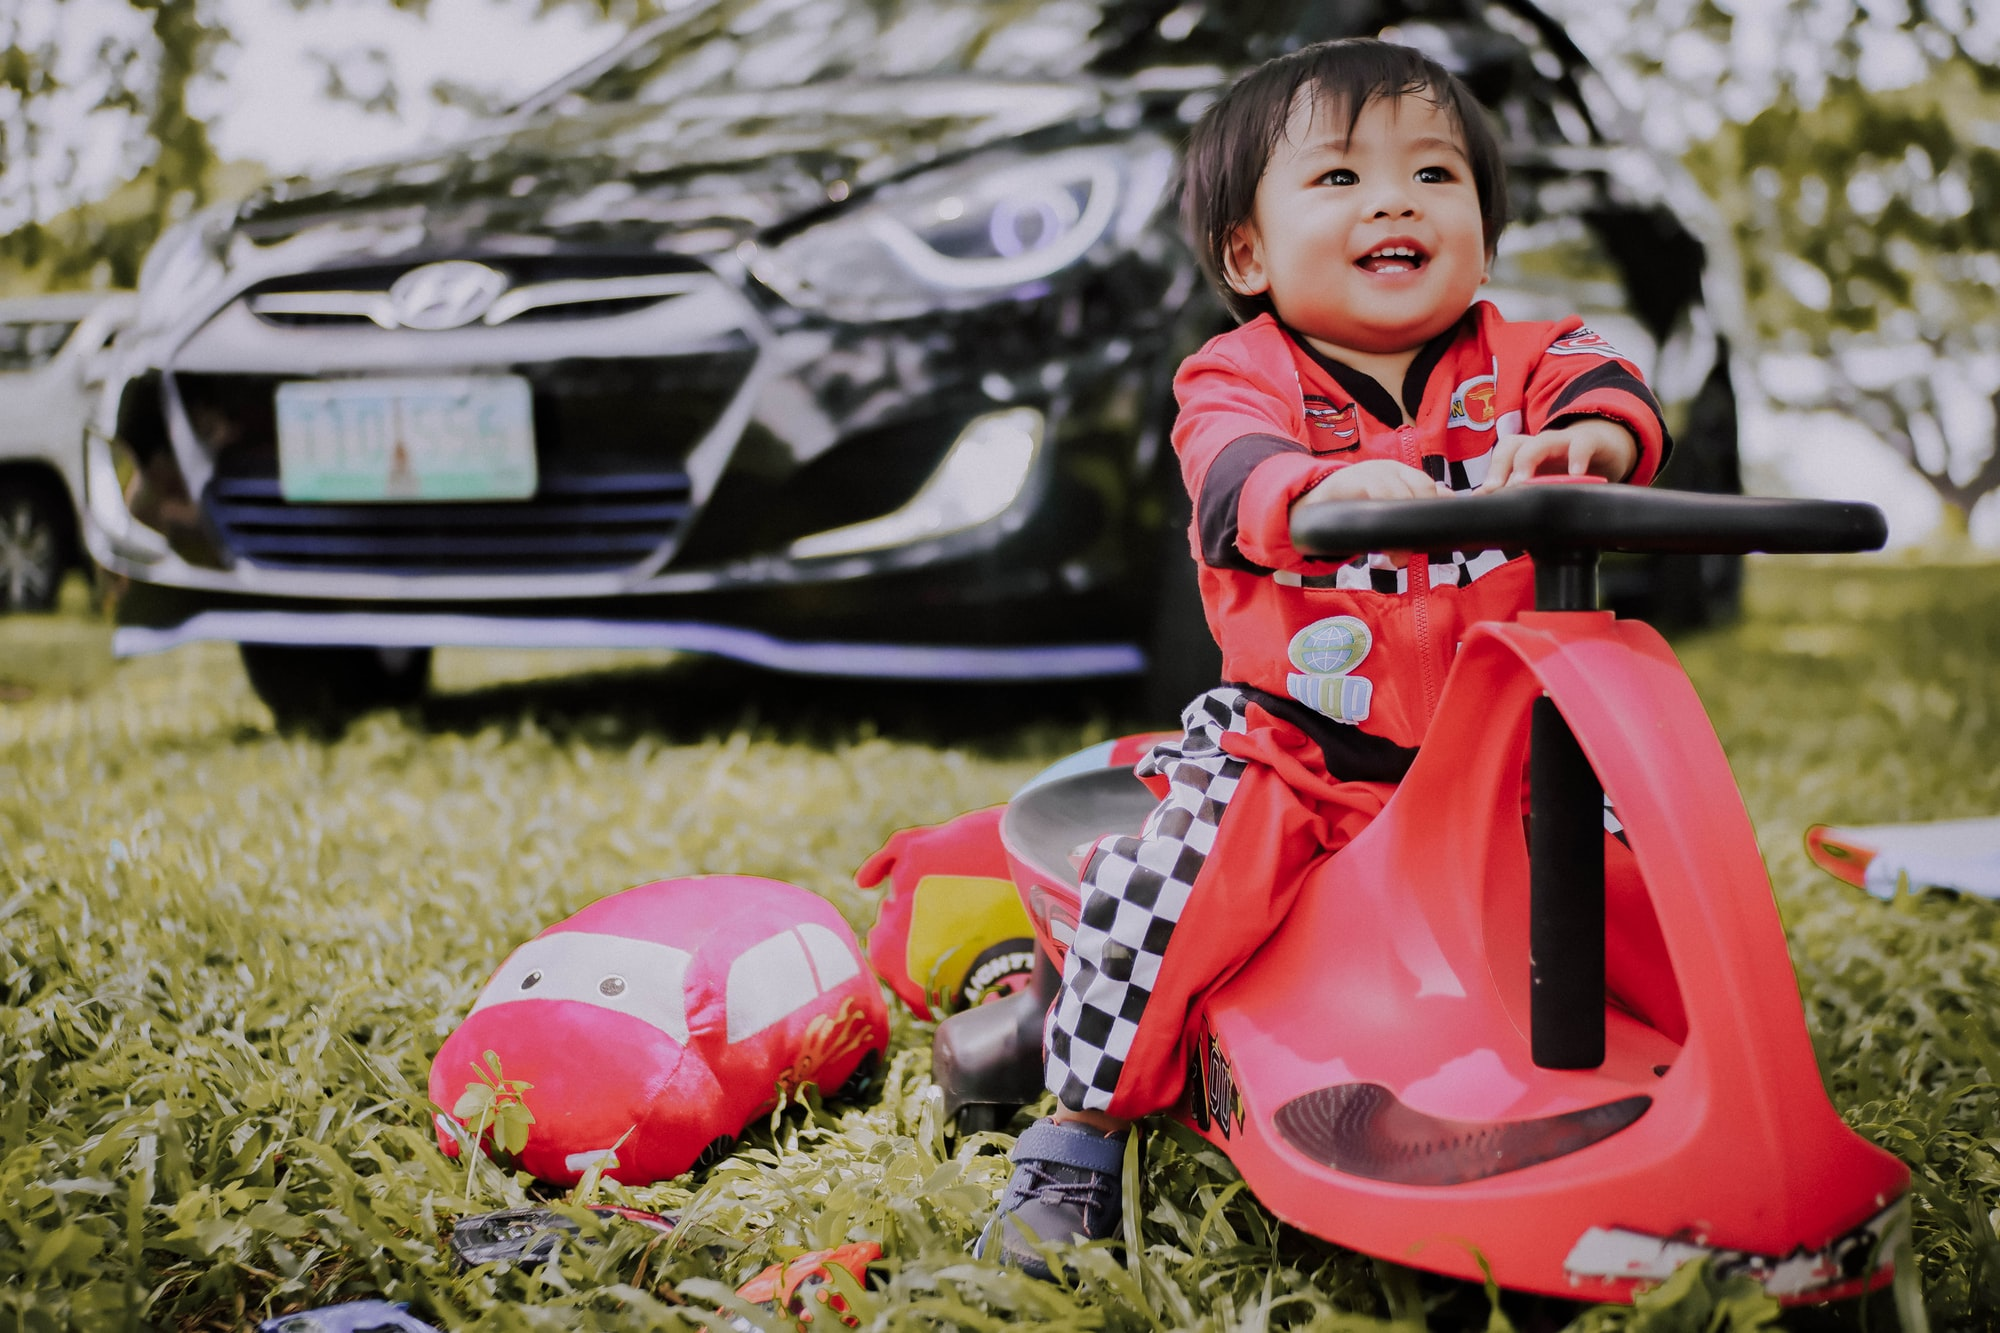 The 15 Best Push Cars For Toddlers